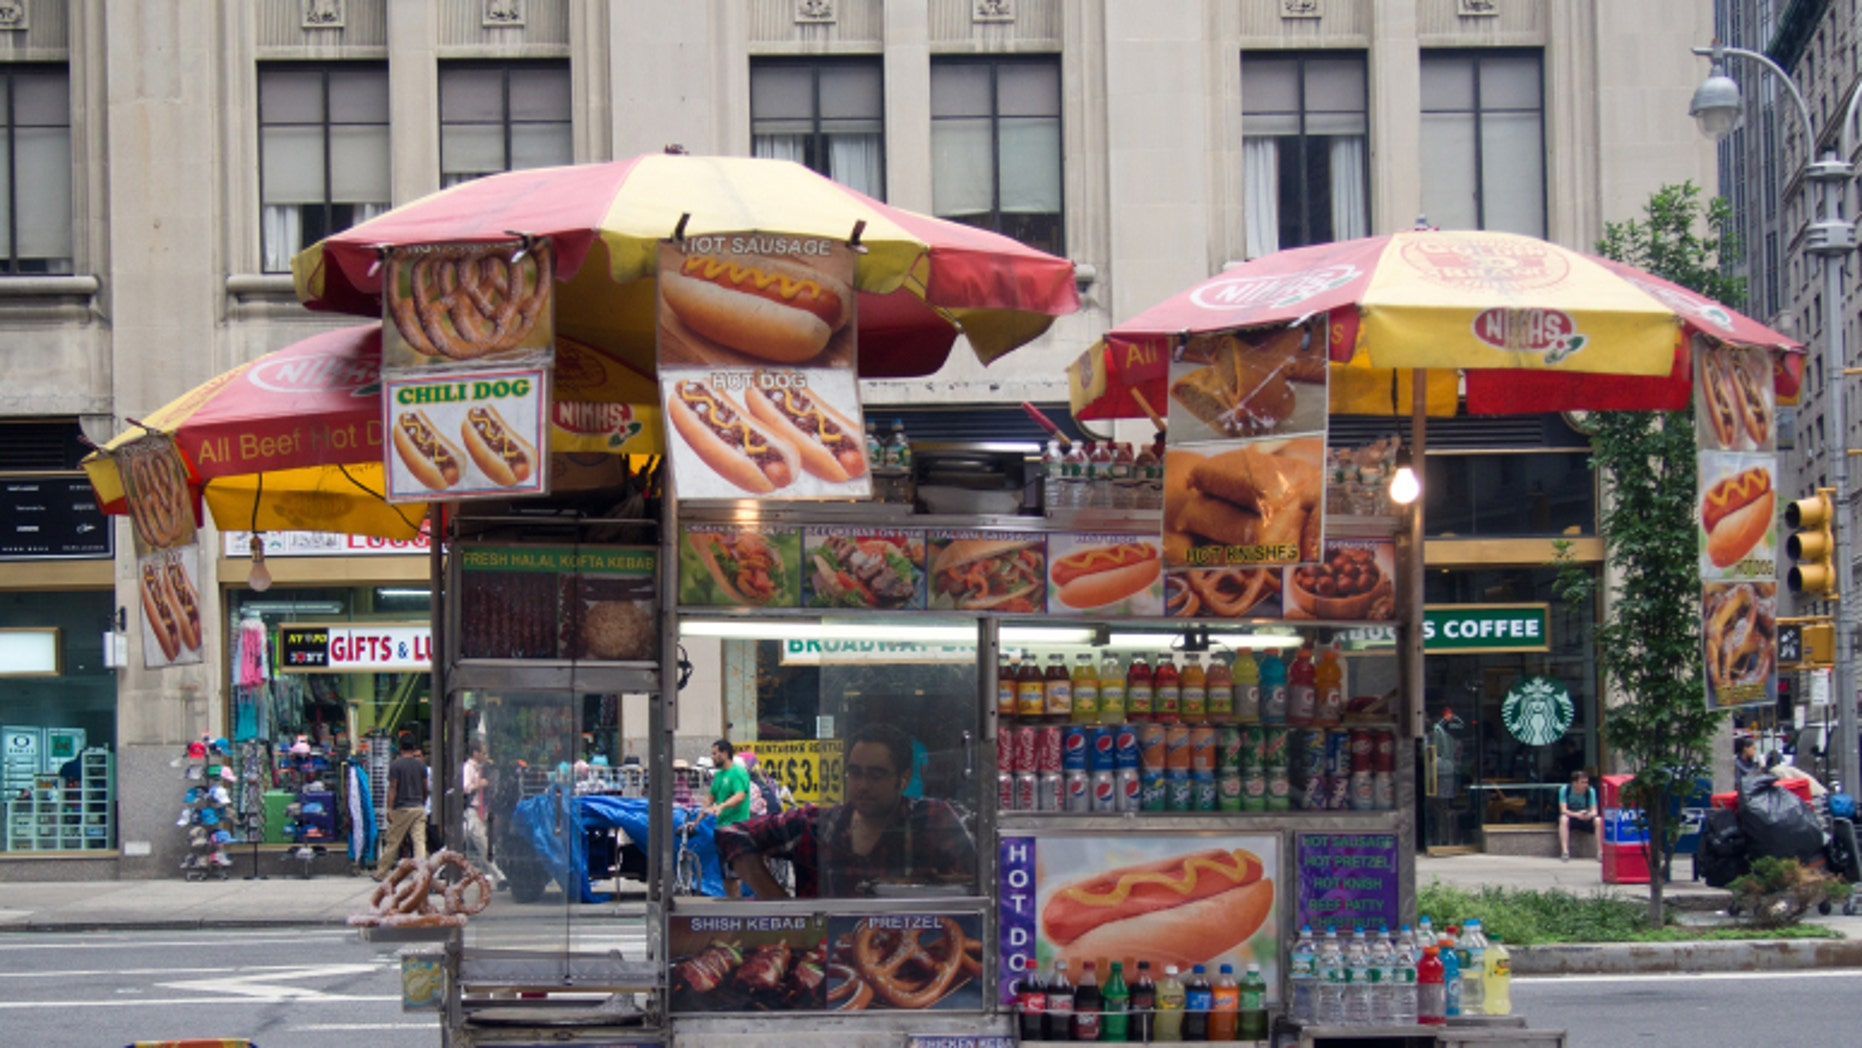 New York City hot dog vendors are visible on nearly every street corner of neighborhoods with popular tourist attractions.